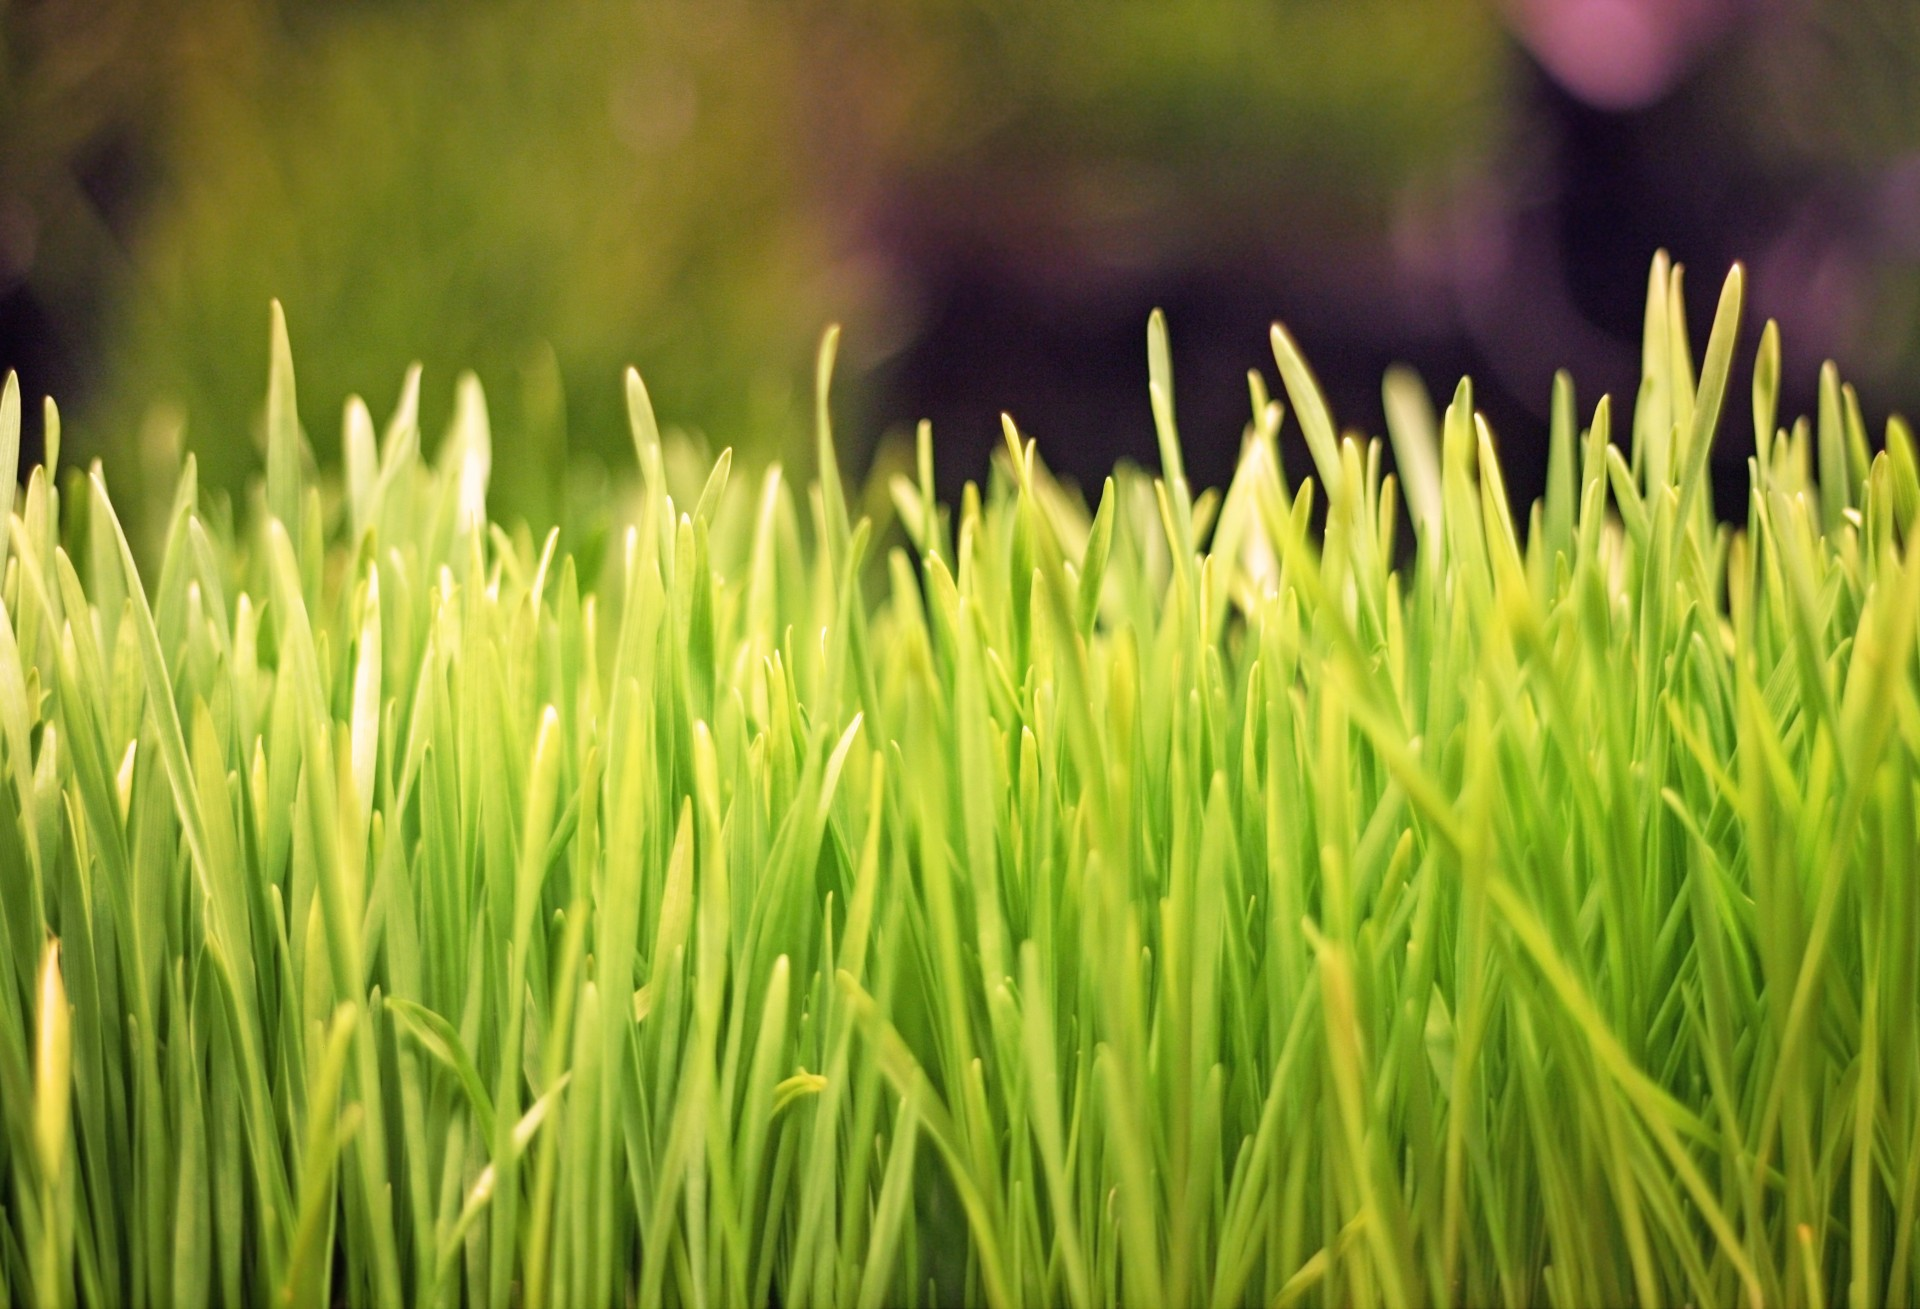 Let us know why Wheatgrass is so popular